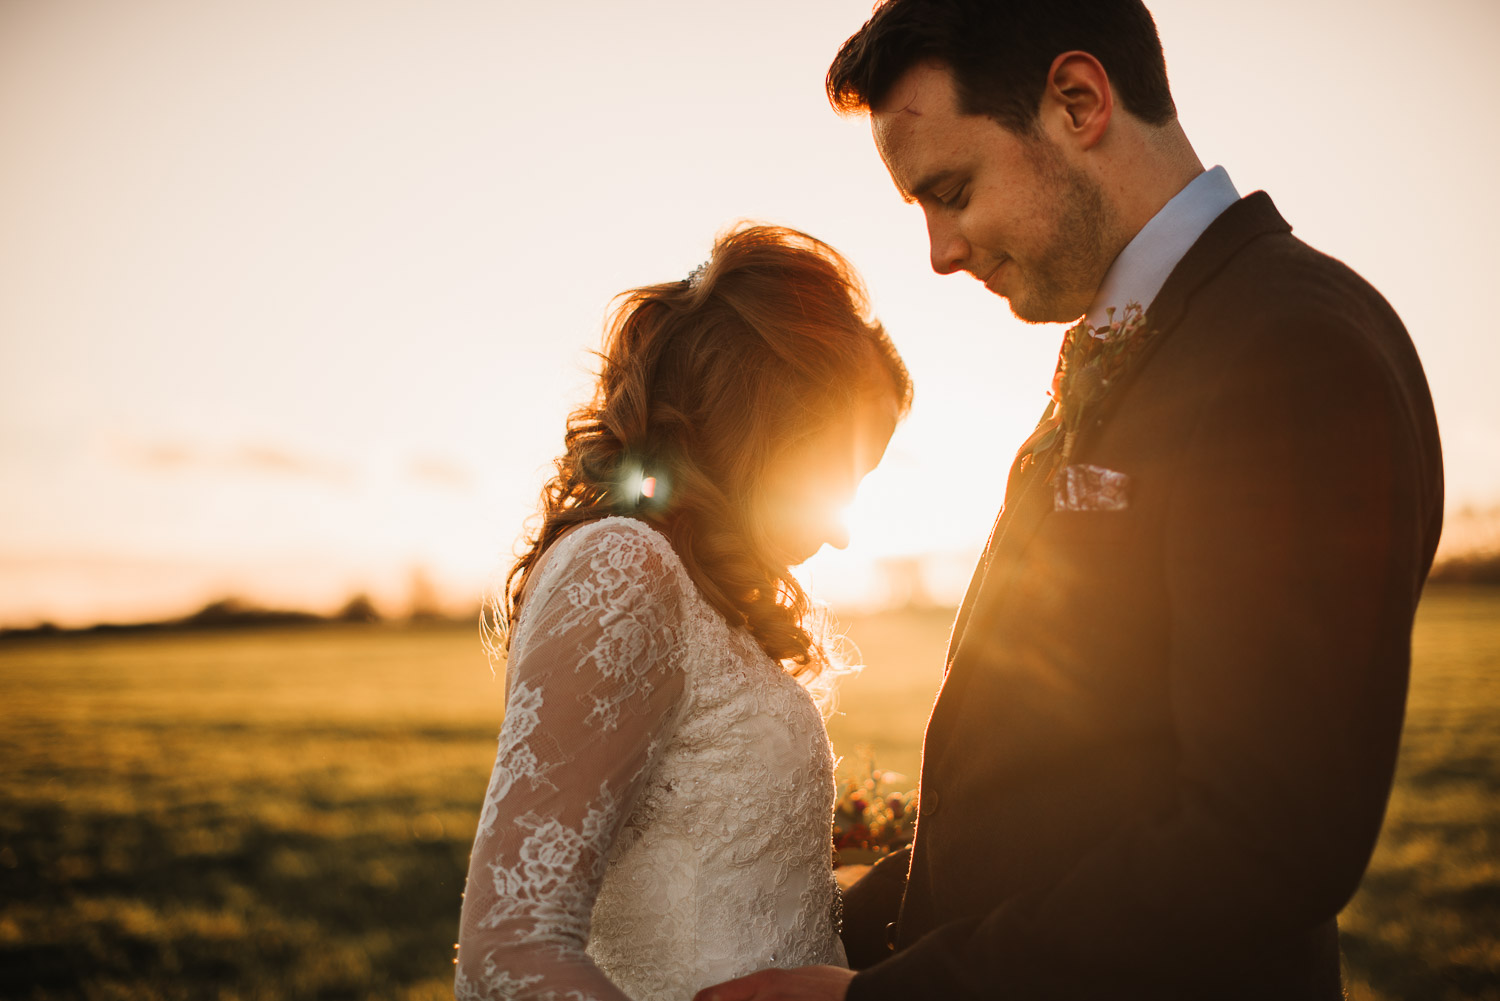 bride and groom sunset portraits by creative and alternative london wedding photographer the shannons photography